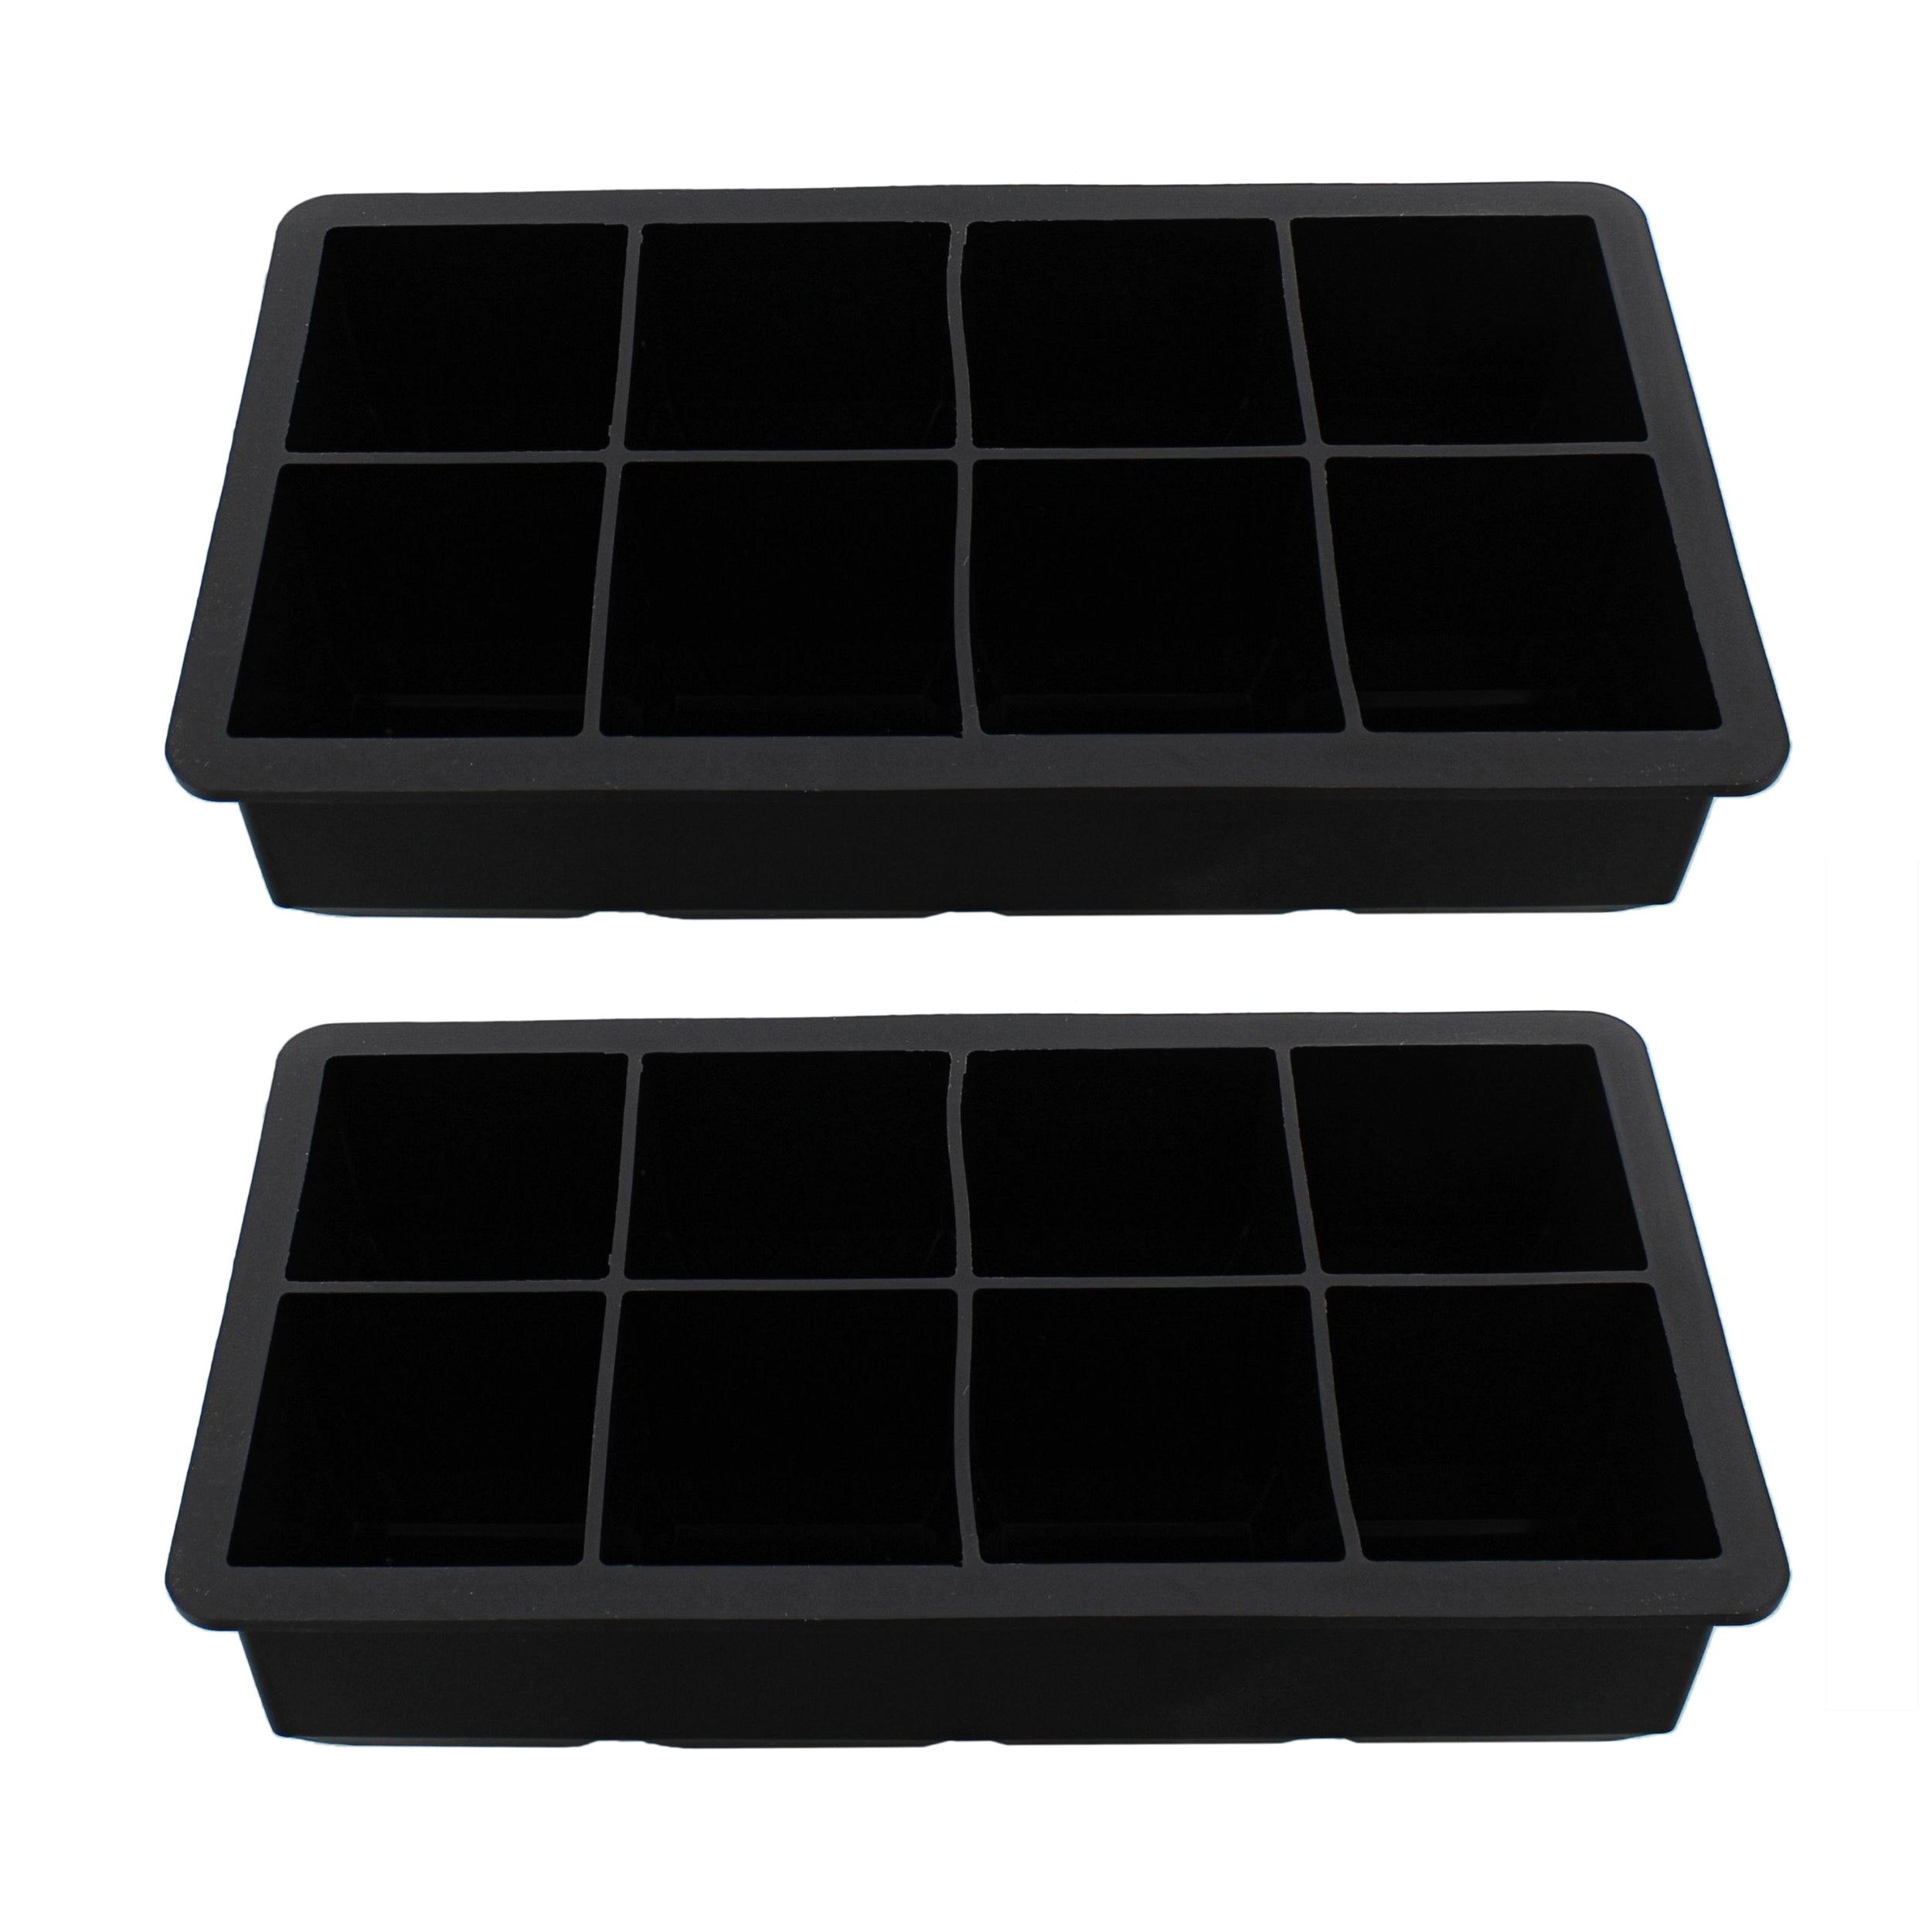 Silicone Ice Cube Mold 8 Cubes Black Food Drink Ice Tray Set